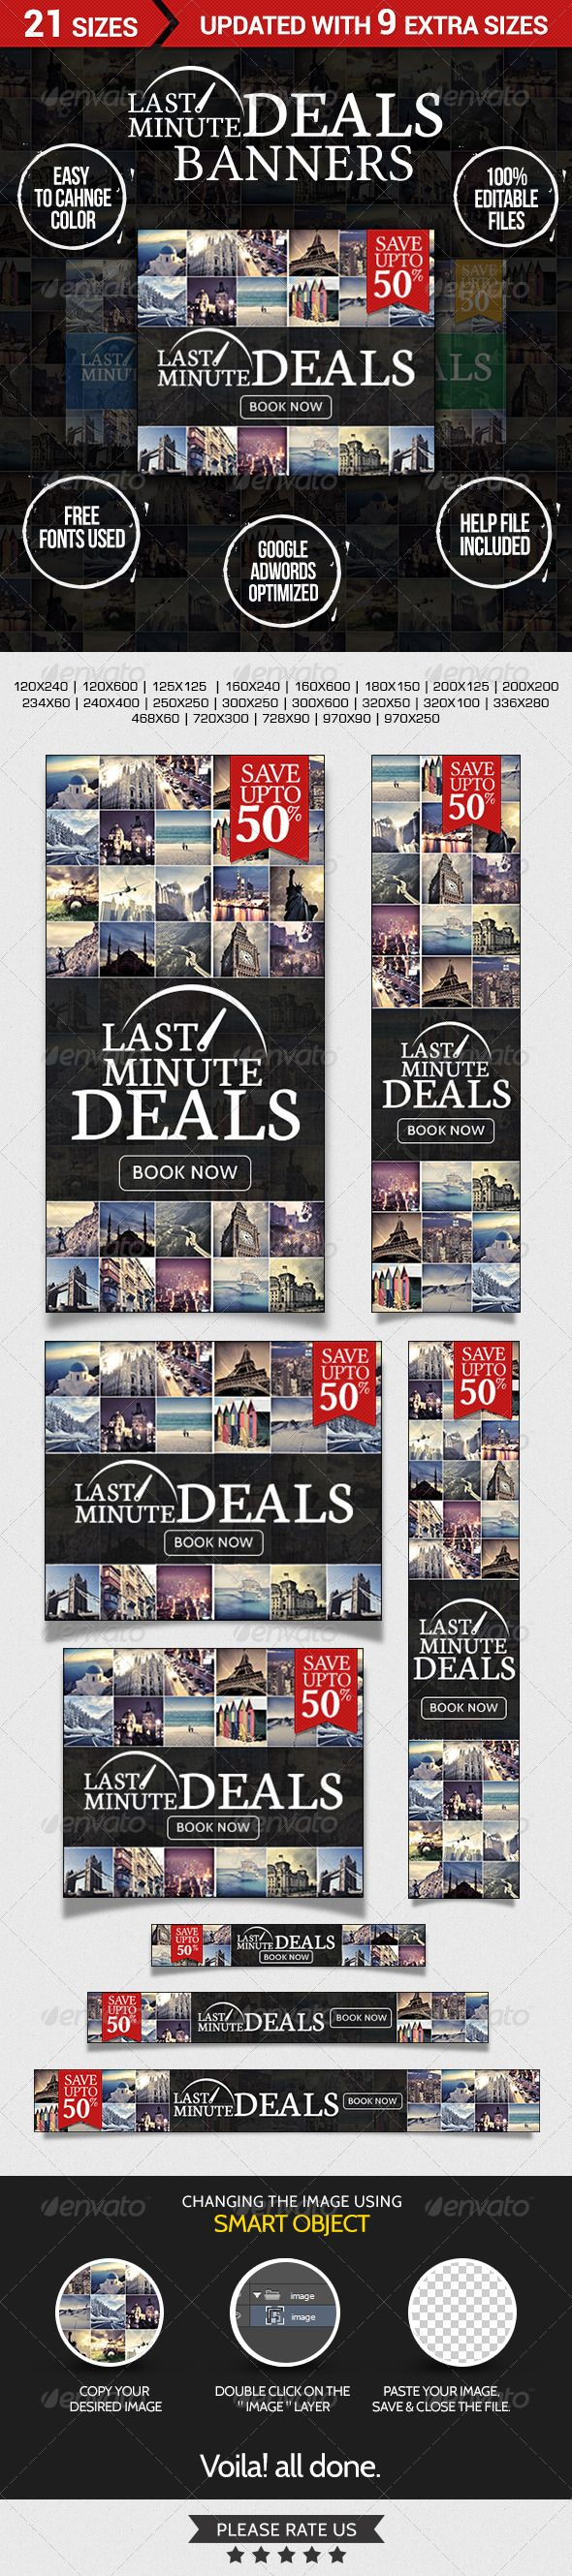 Last Minute Deals! Travel Web Banners Template PSD | Buy and Download: http://graphicriver.net/item/last-minute-deals-travel-banners/7218547?WT.ac=category_thumb&WT.z_author=doto&ref=ksioks